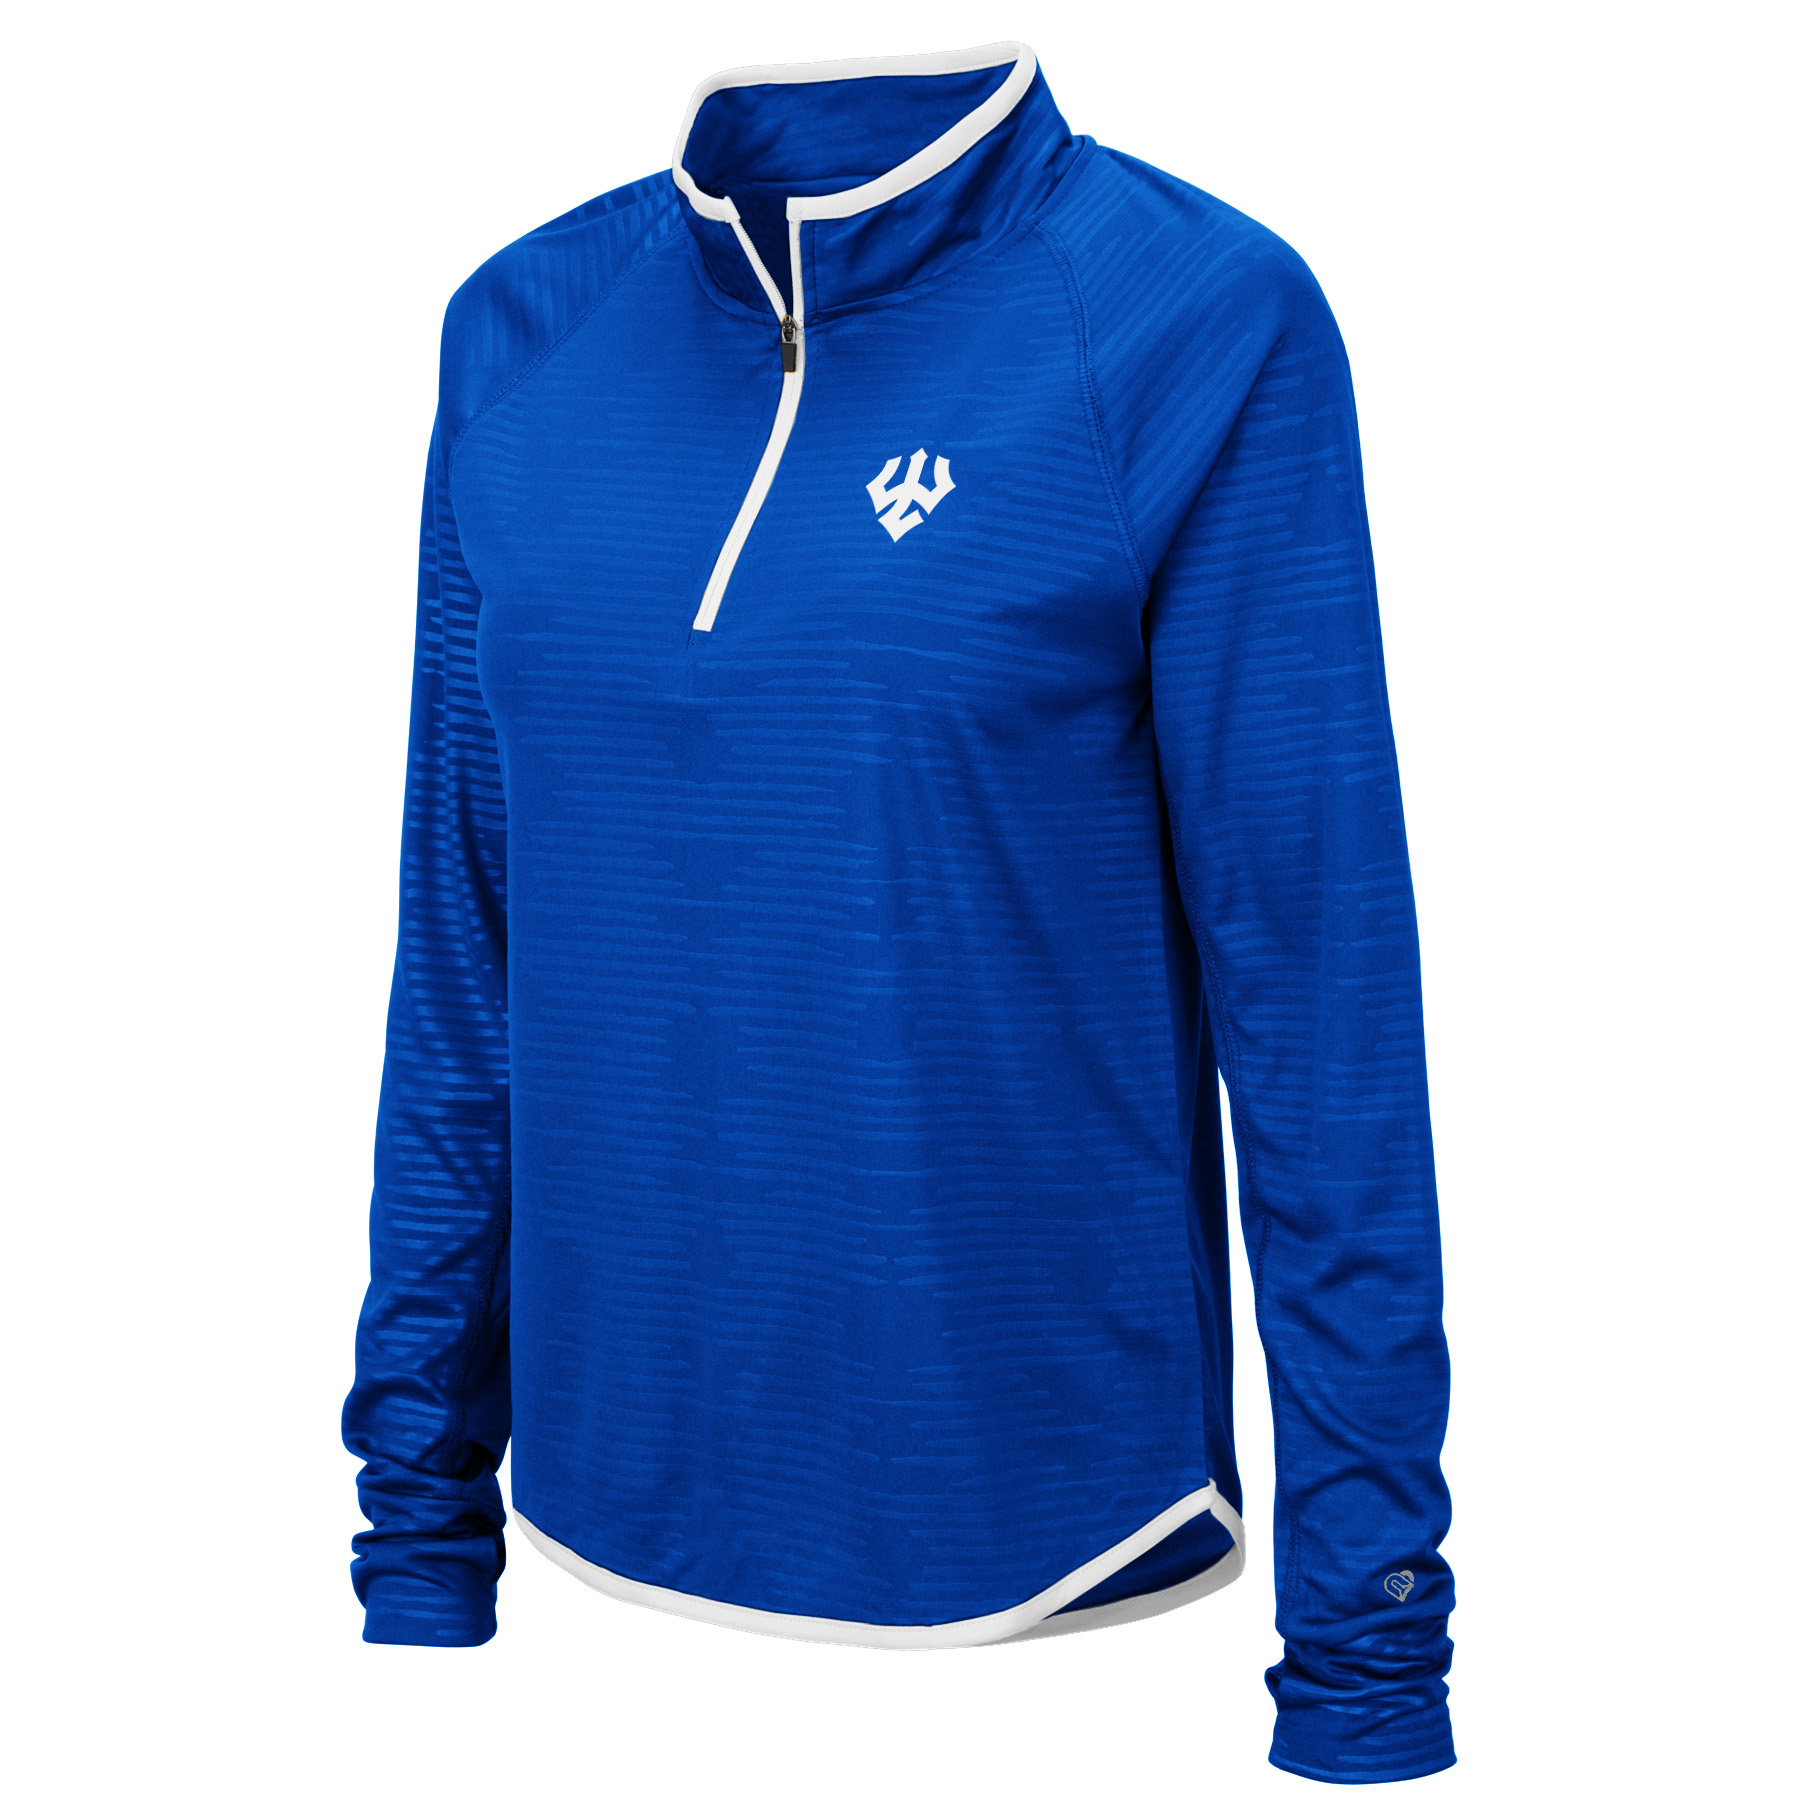 Cover Image For Colosseum Soulmate 1/4 Zip Pullover